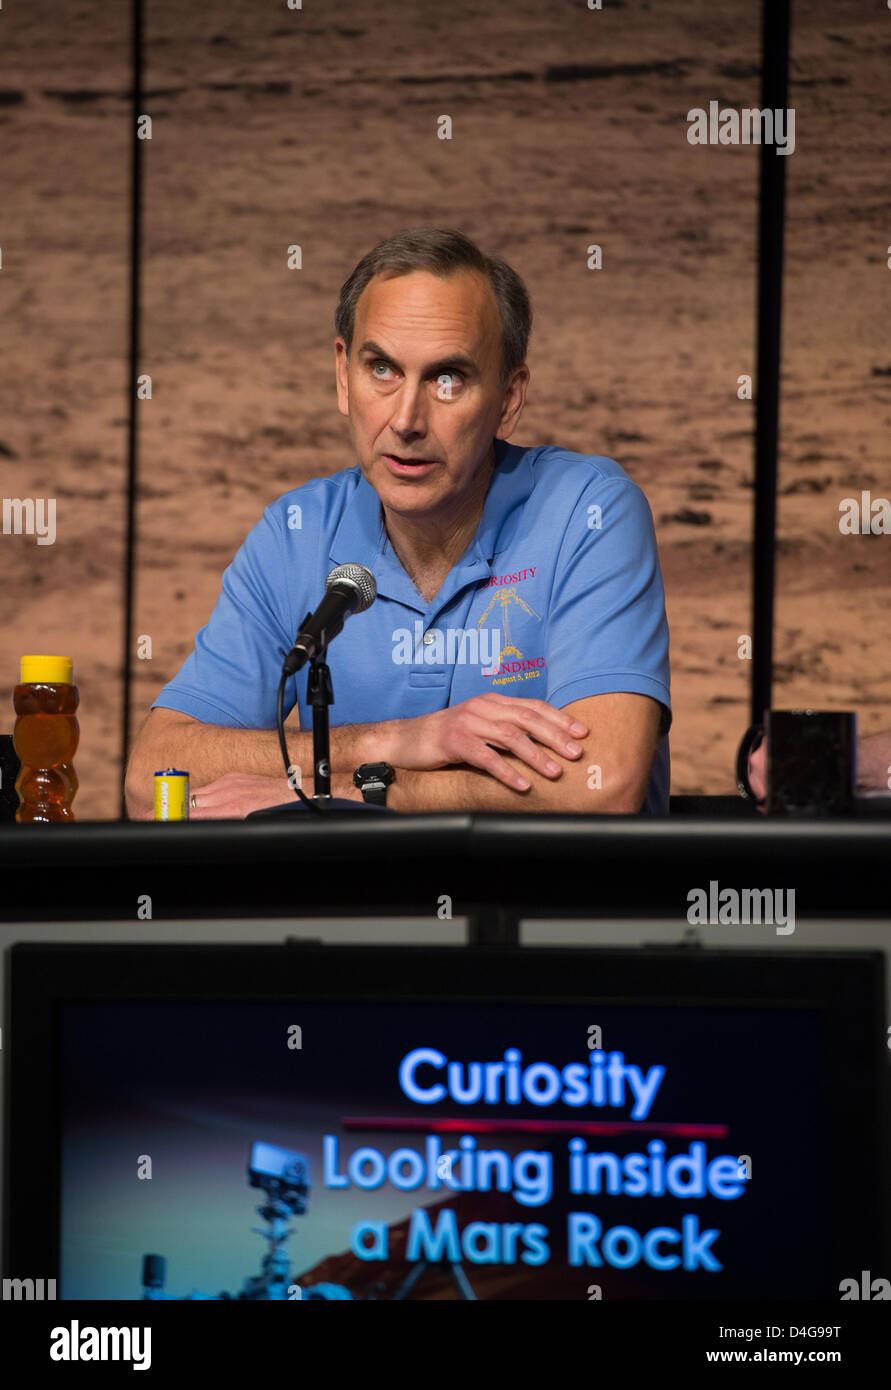 NASA Curiosity project scientist John Grotzinger of the California Institute of Technology answers a question at - Stock Image